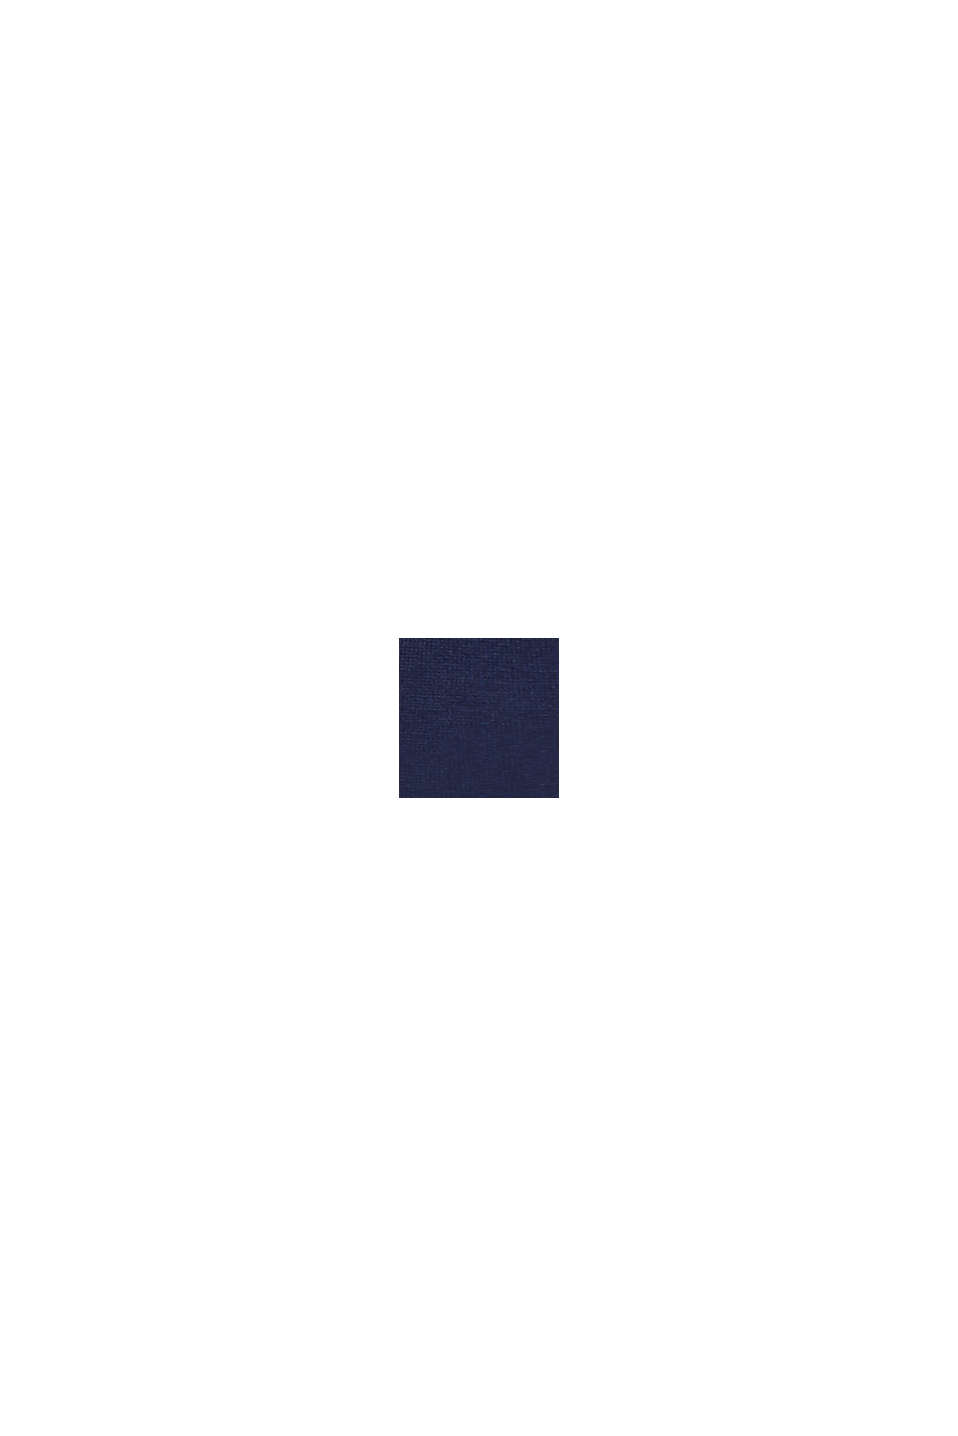 Polosweater i 100% bomuld, NIGHT BLUE, swatch